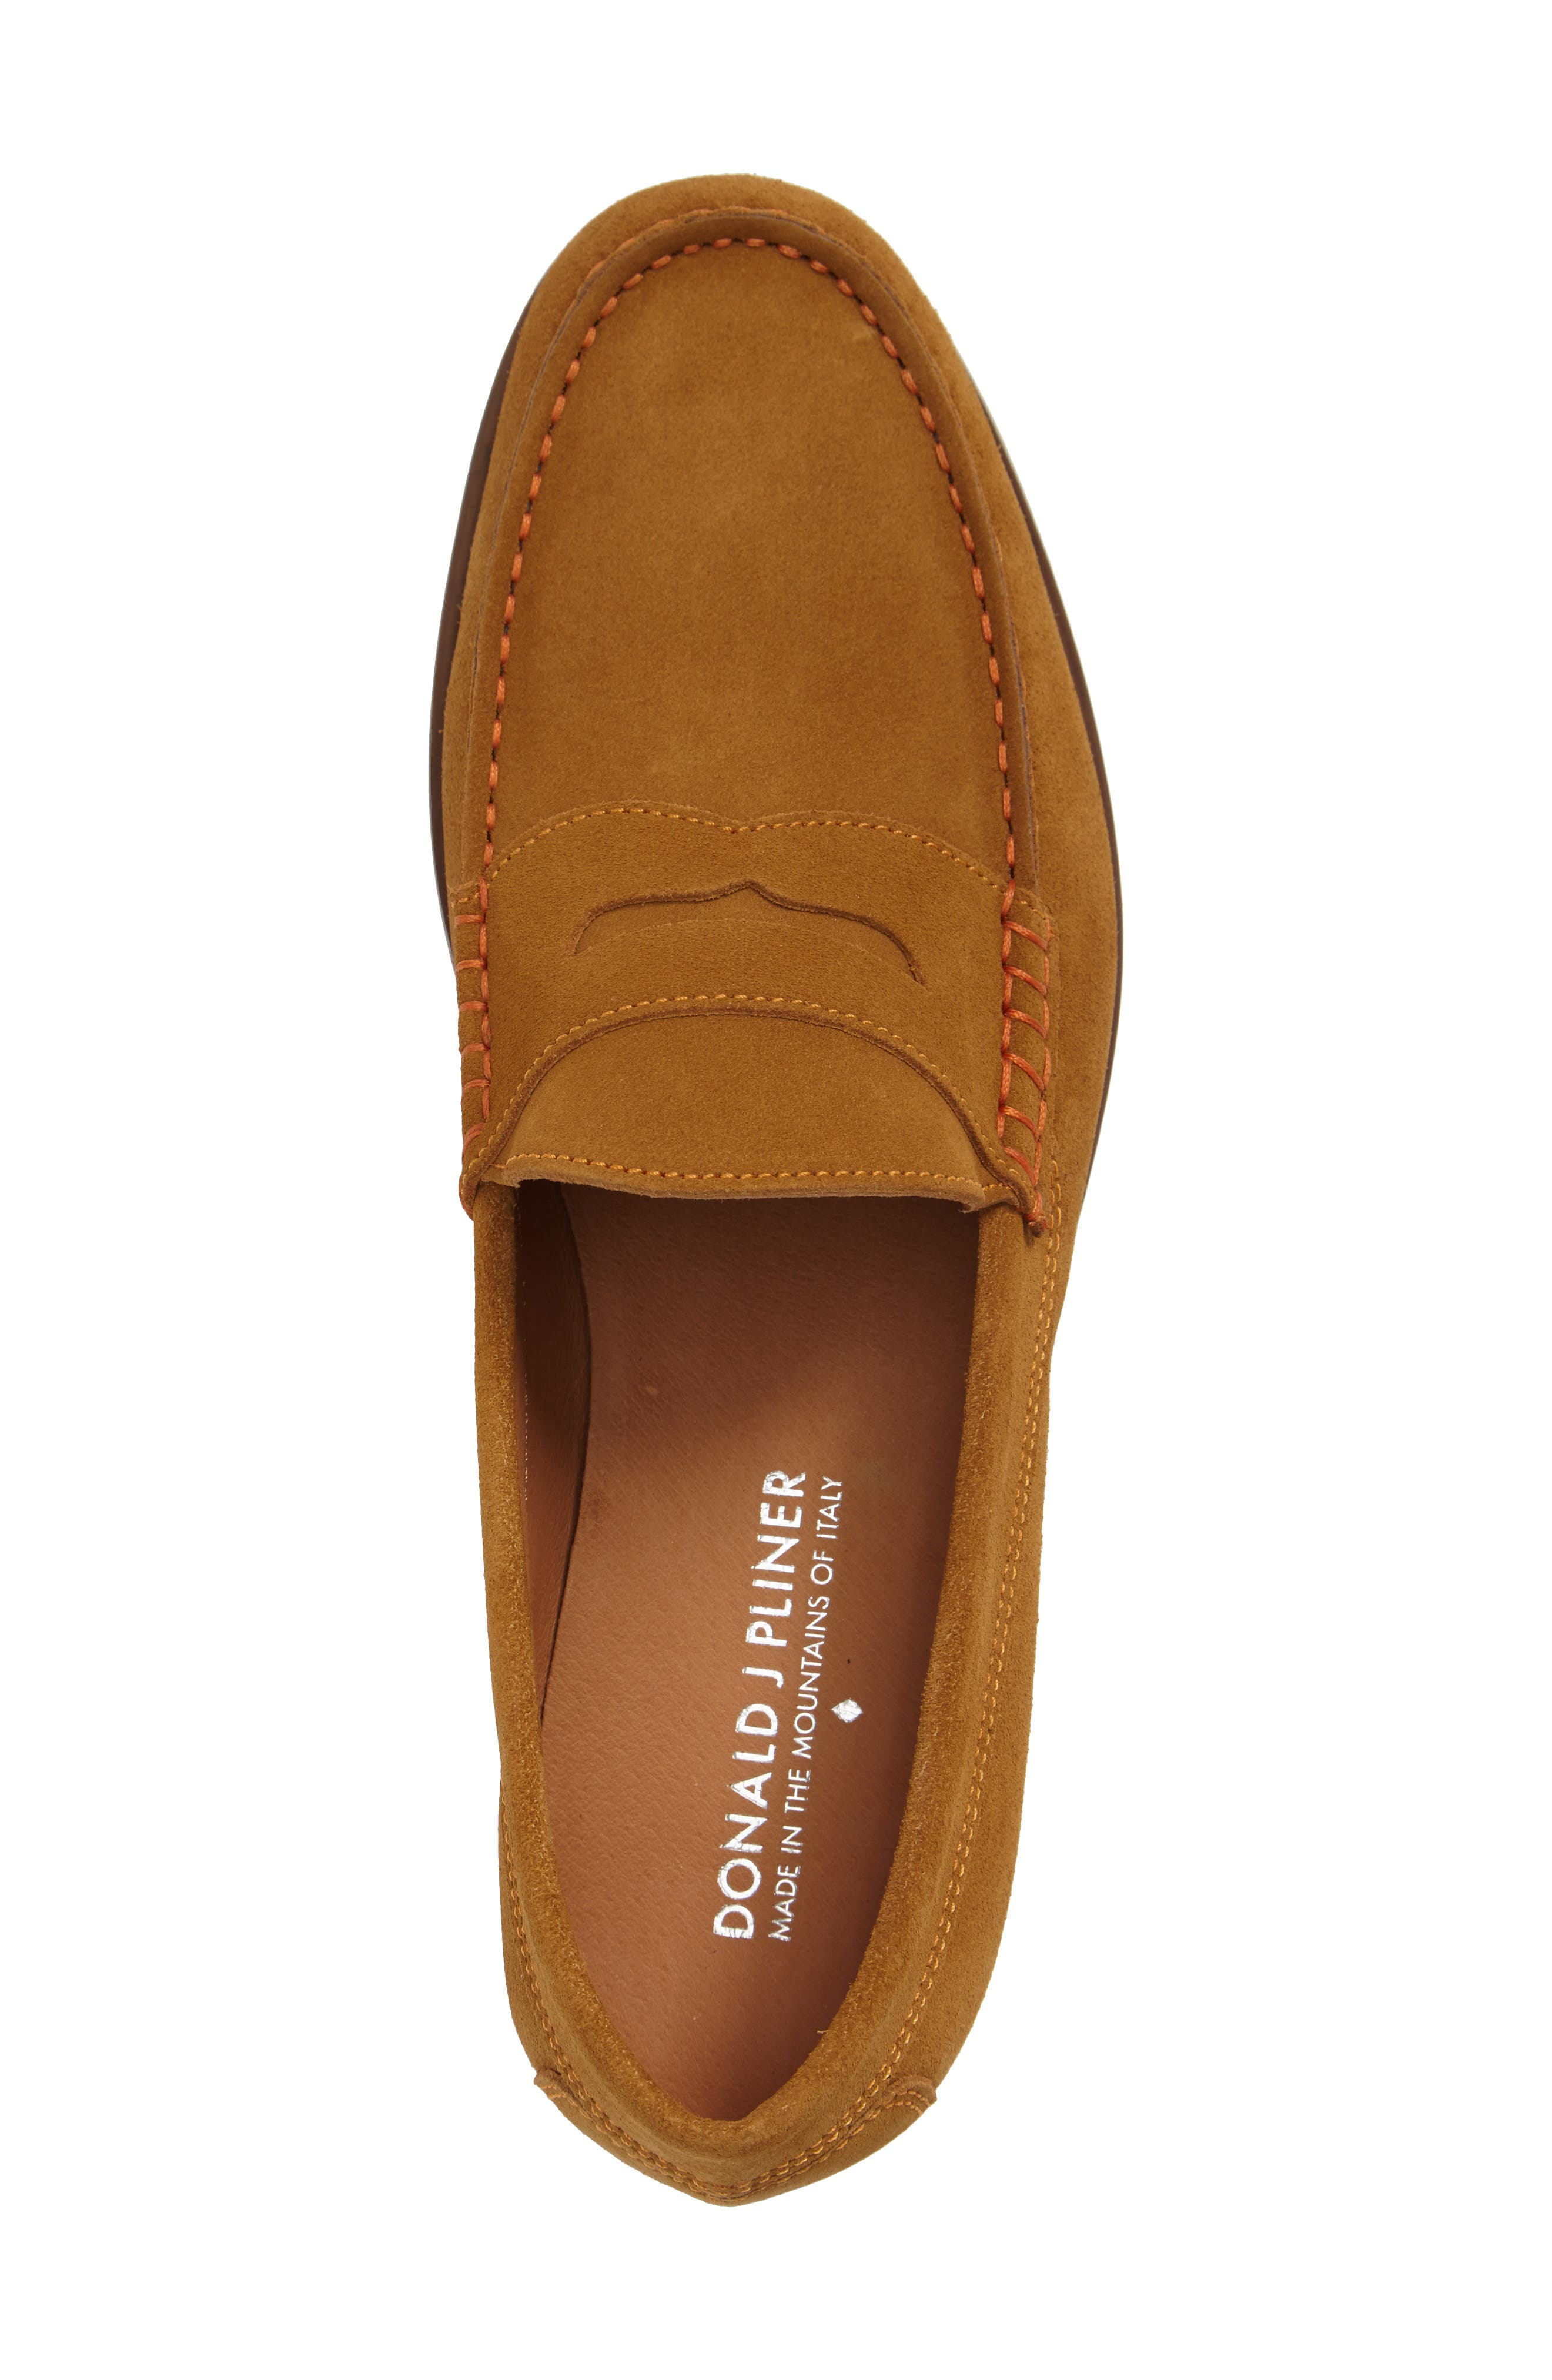 Nicola Penny Loafer,                             Alternate thumbnail 27, color,